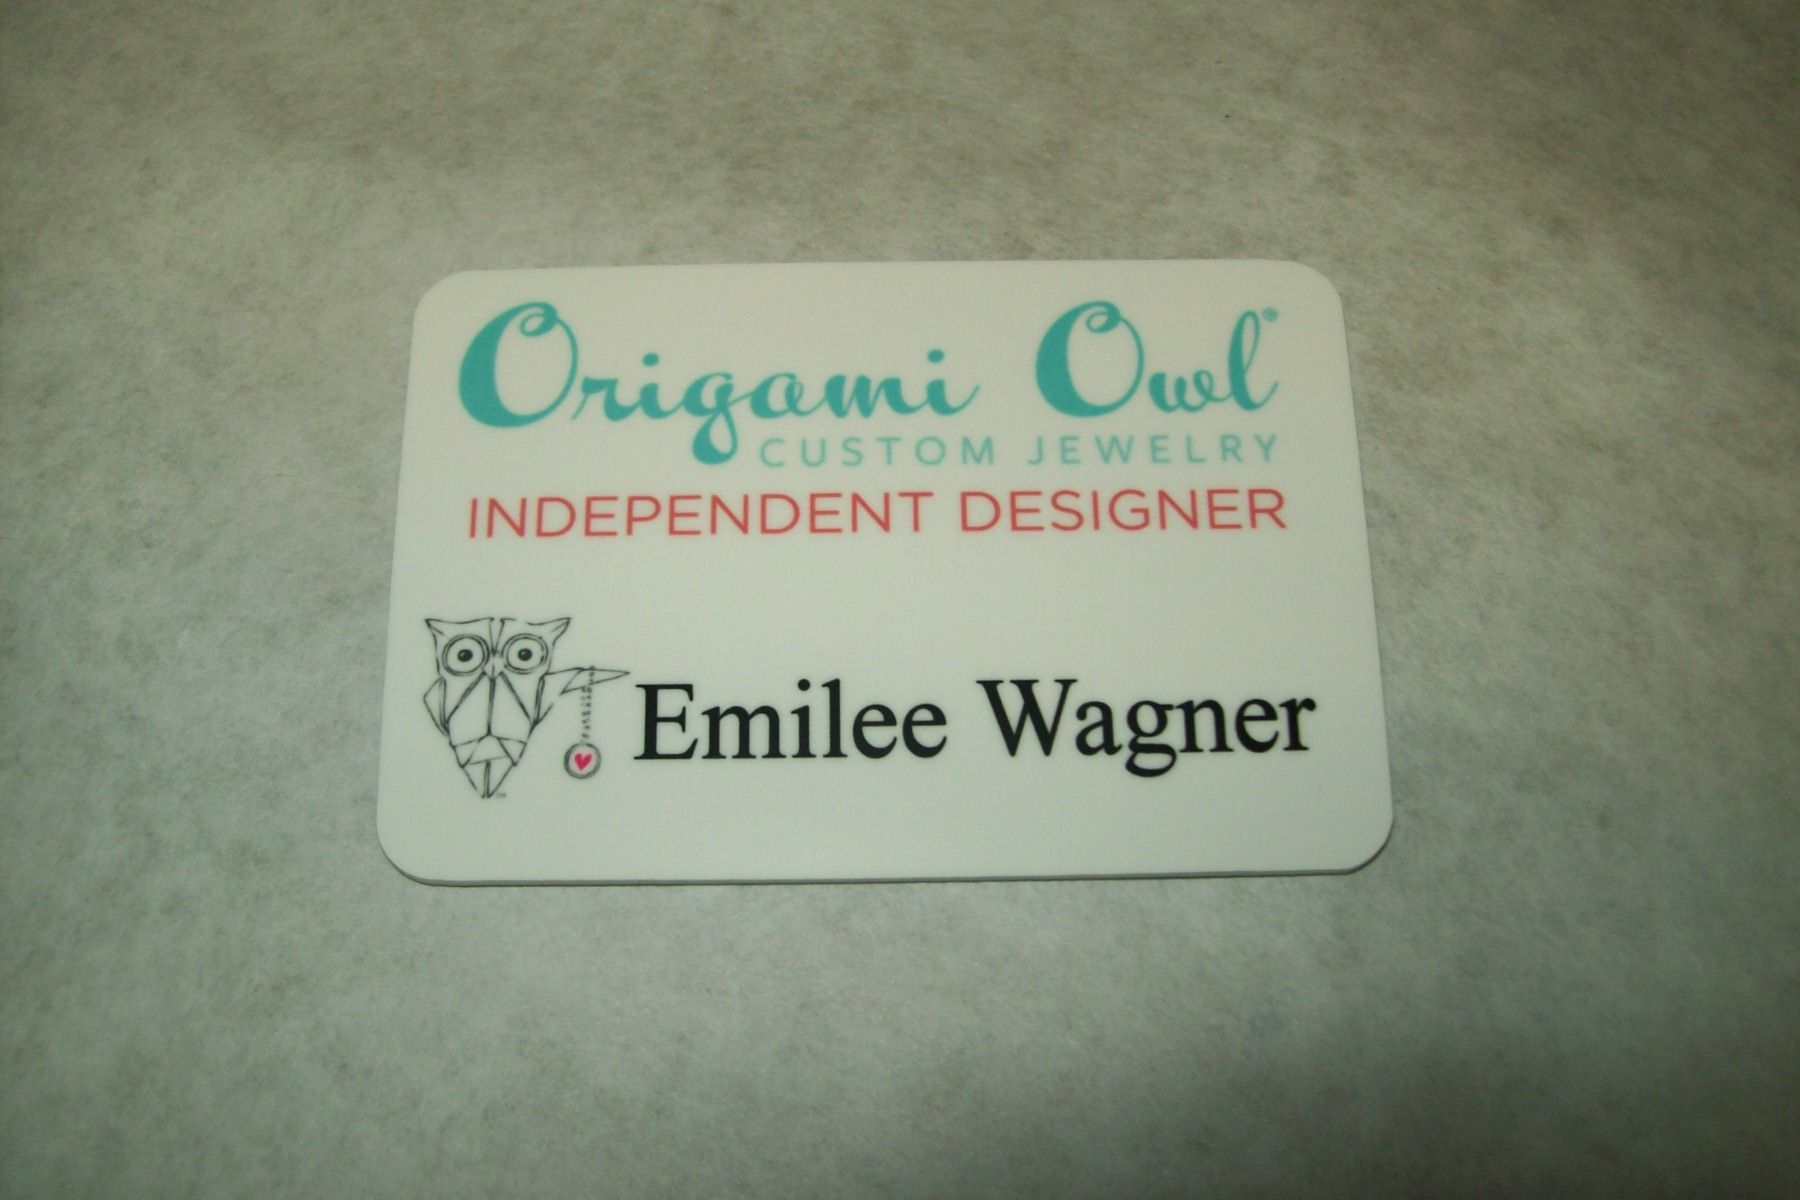 Origami owl coupon code free shipping